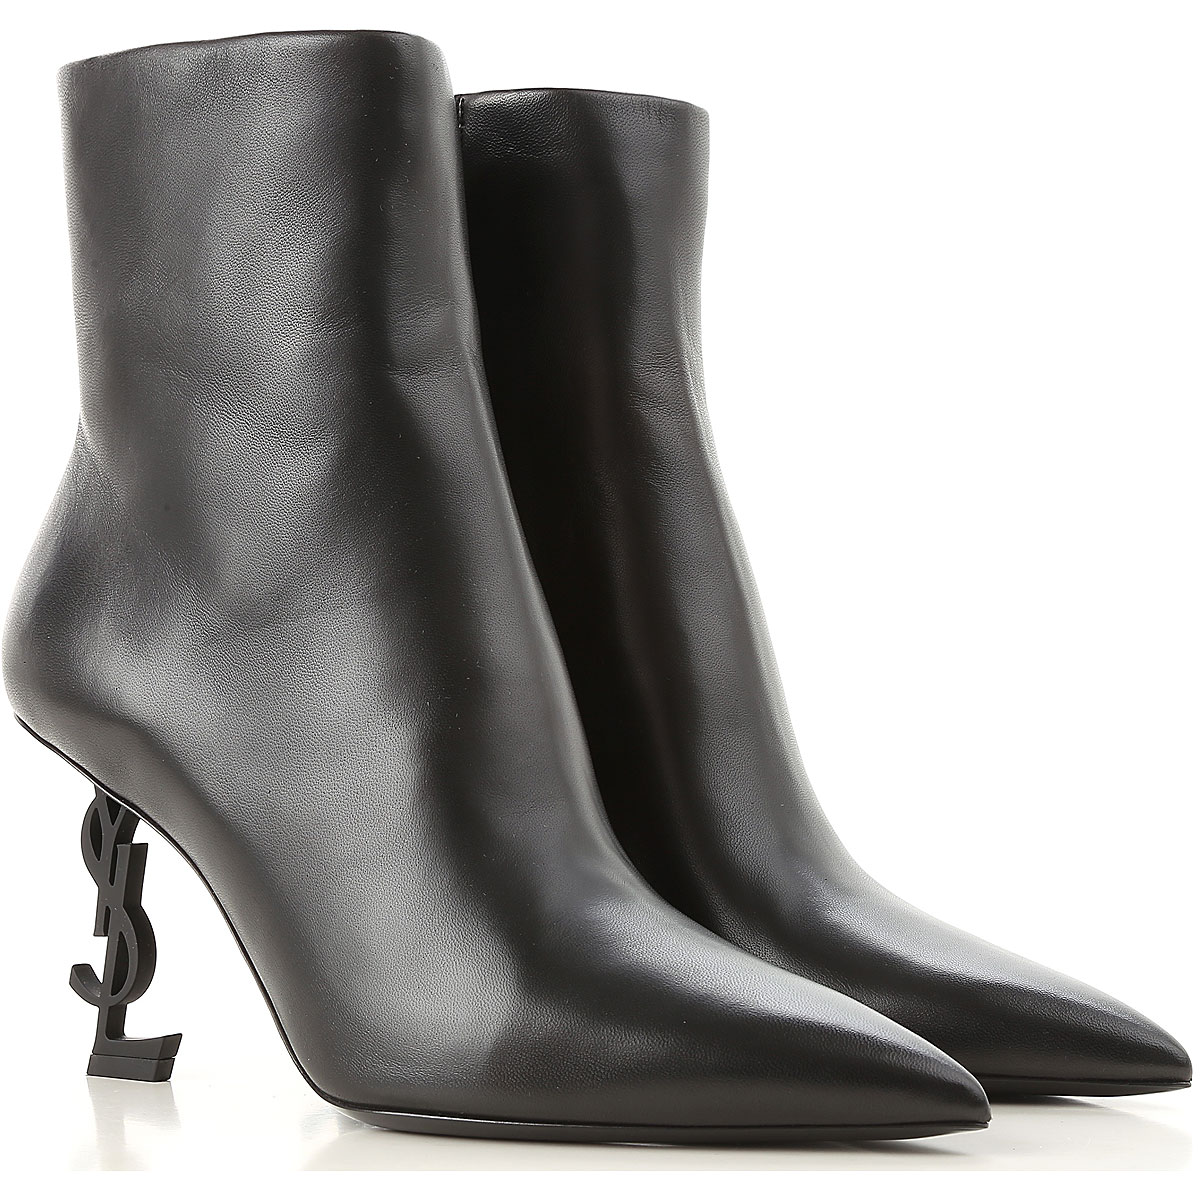 Yves Saint Laurent Boots for Women, Booties On Sale, Black, Leather, 2019, 10 5.5 6.5 7 8 8.5 9